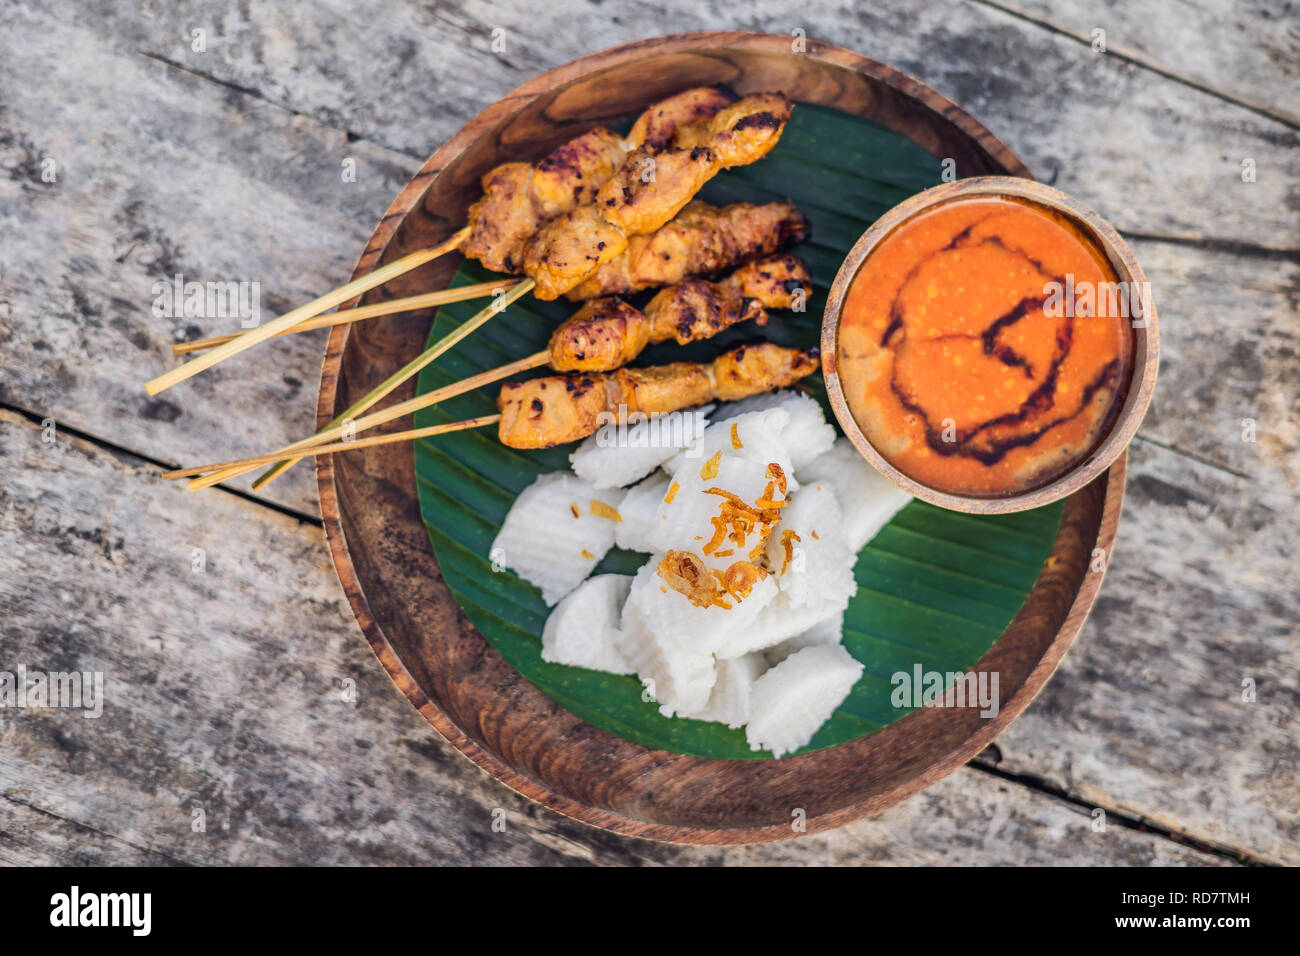 Indonesian Chicken Satay Or Sate Ayam Served With Lontong Soy Sauce And Peanut Sauce Lifestyle Food Stock Photo Alamy